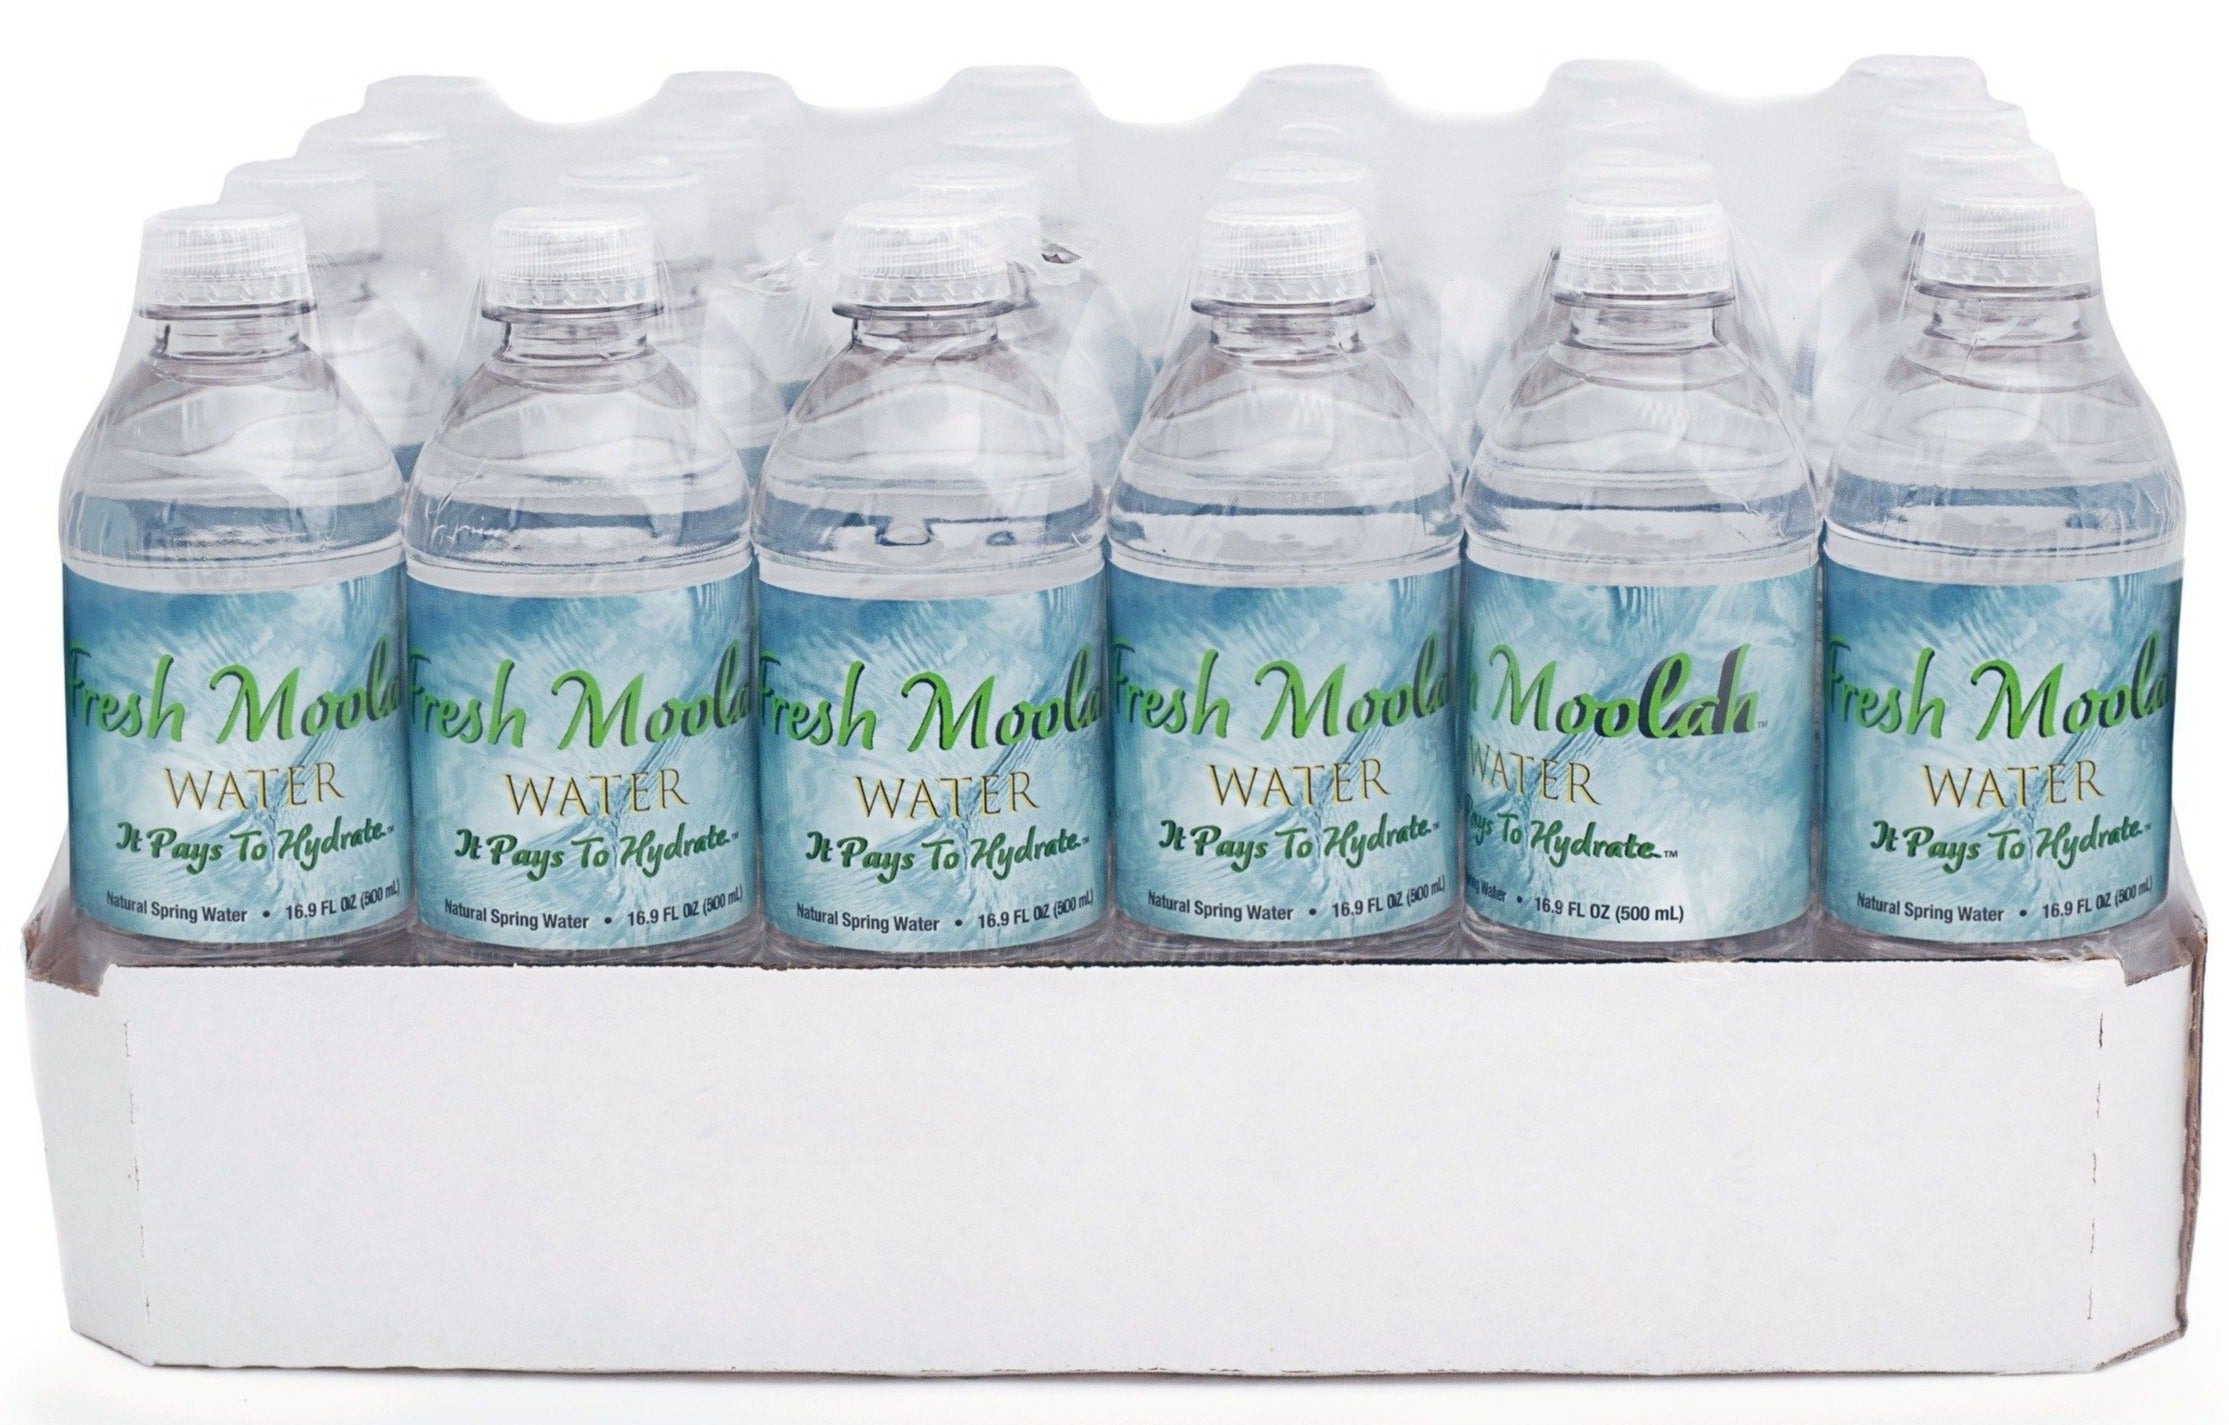 FRESH MOOLAH WATER: CASES OF 24; 16.9 FL OZ BOTTLES